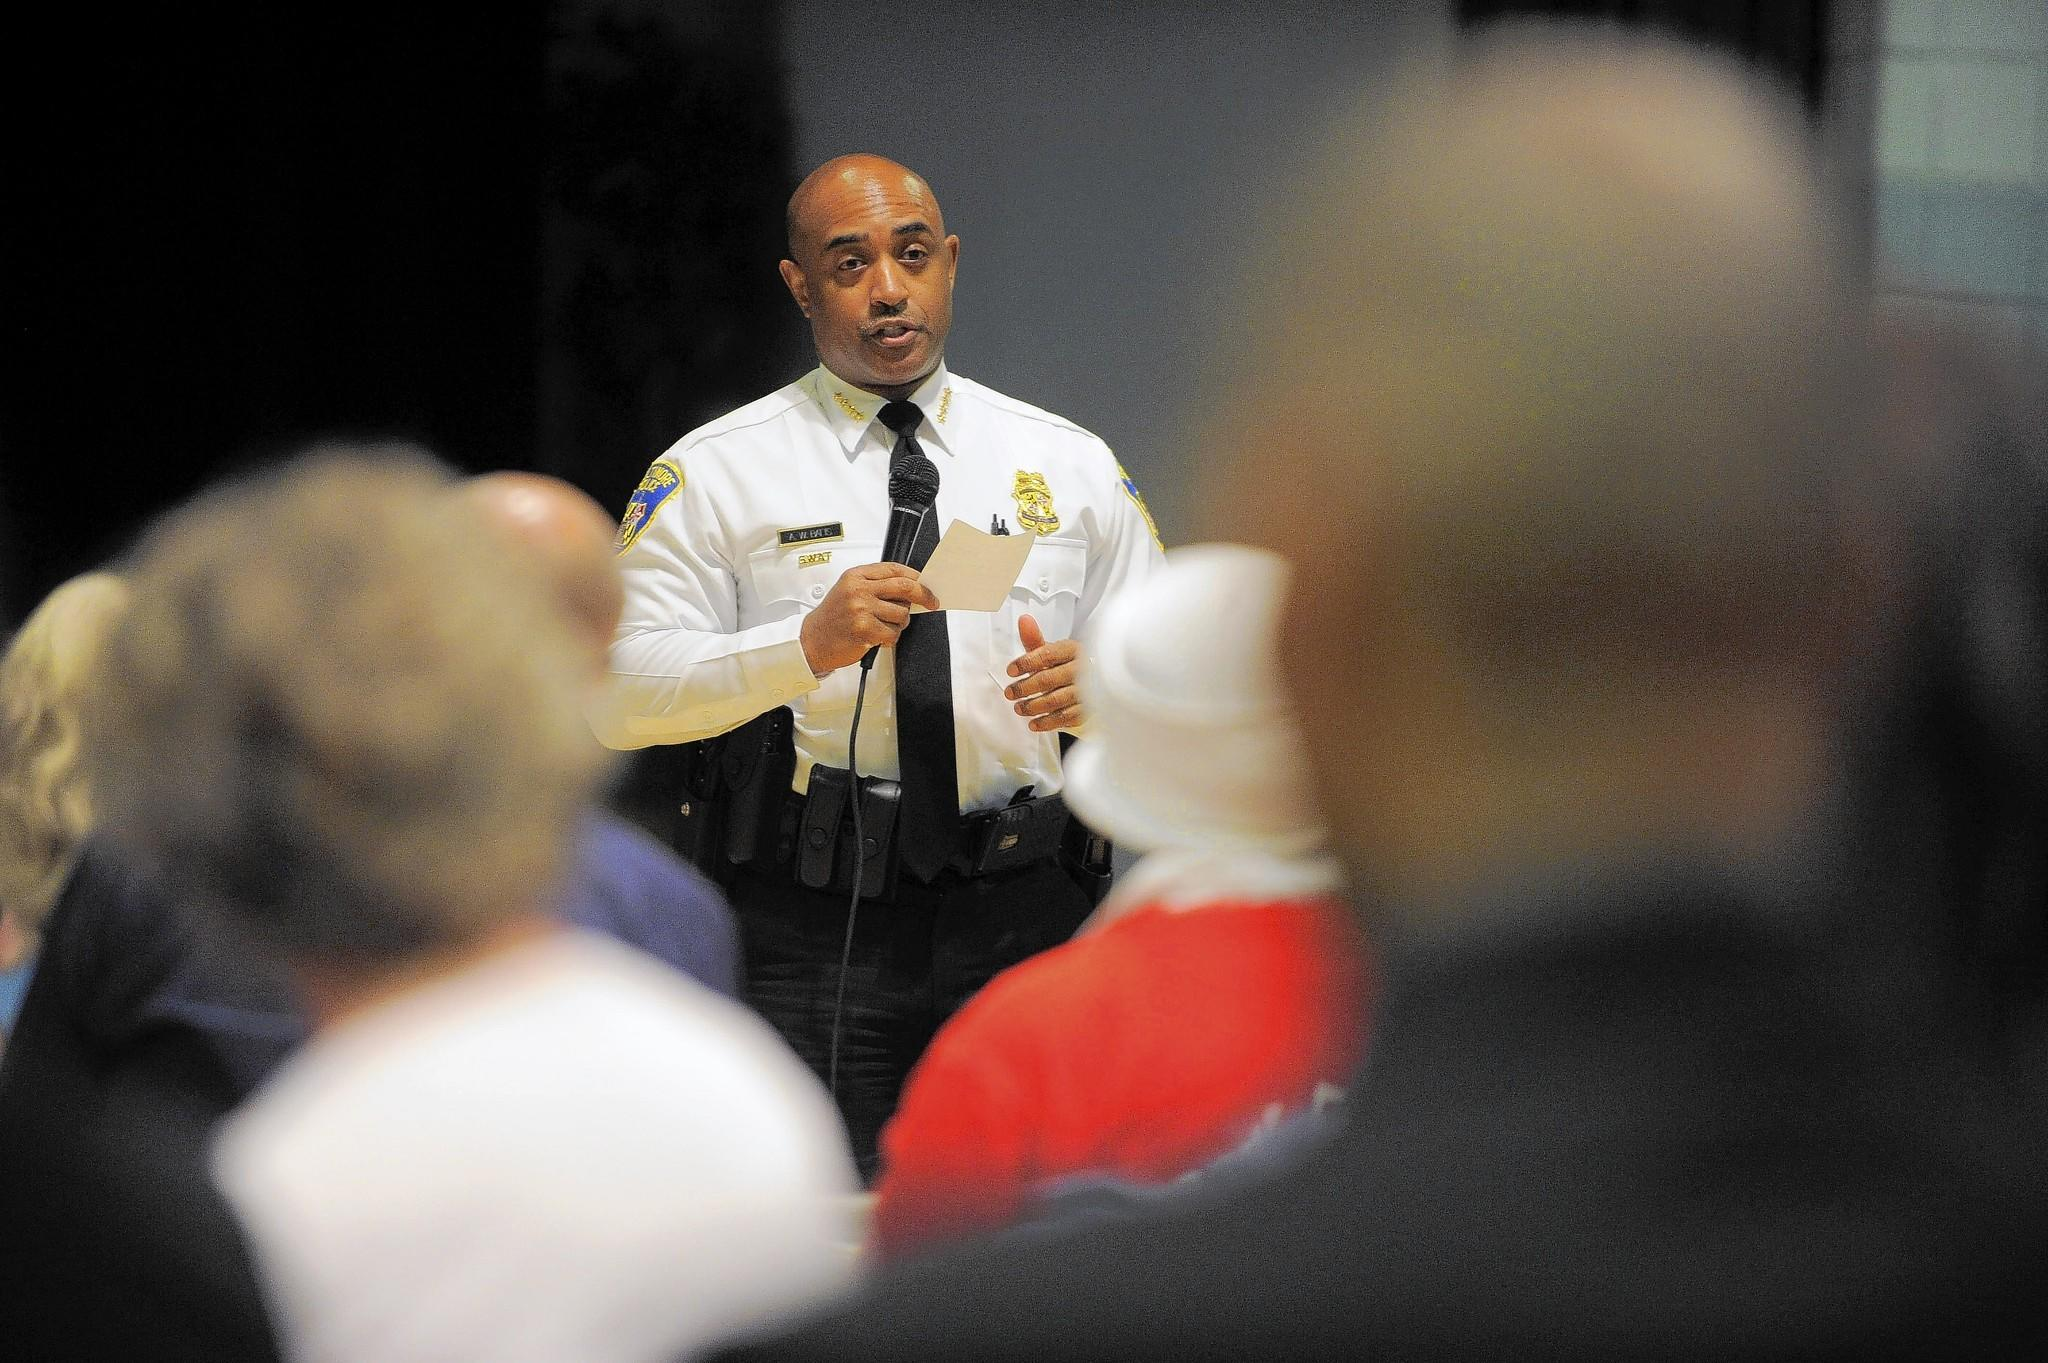 Baltimore Police Commissioner Anthony Batts addresses audience concerns during Mayor Stephanie Rawlings-Blake's Public Safety Forum at the Patterson Park gymnasium on June 11.